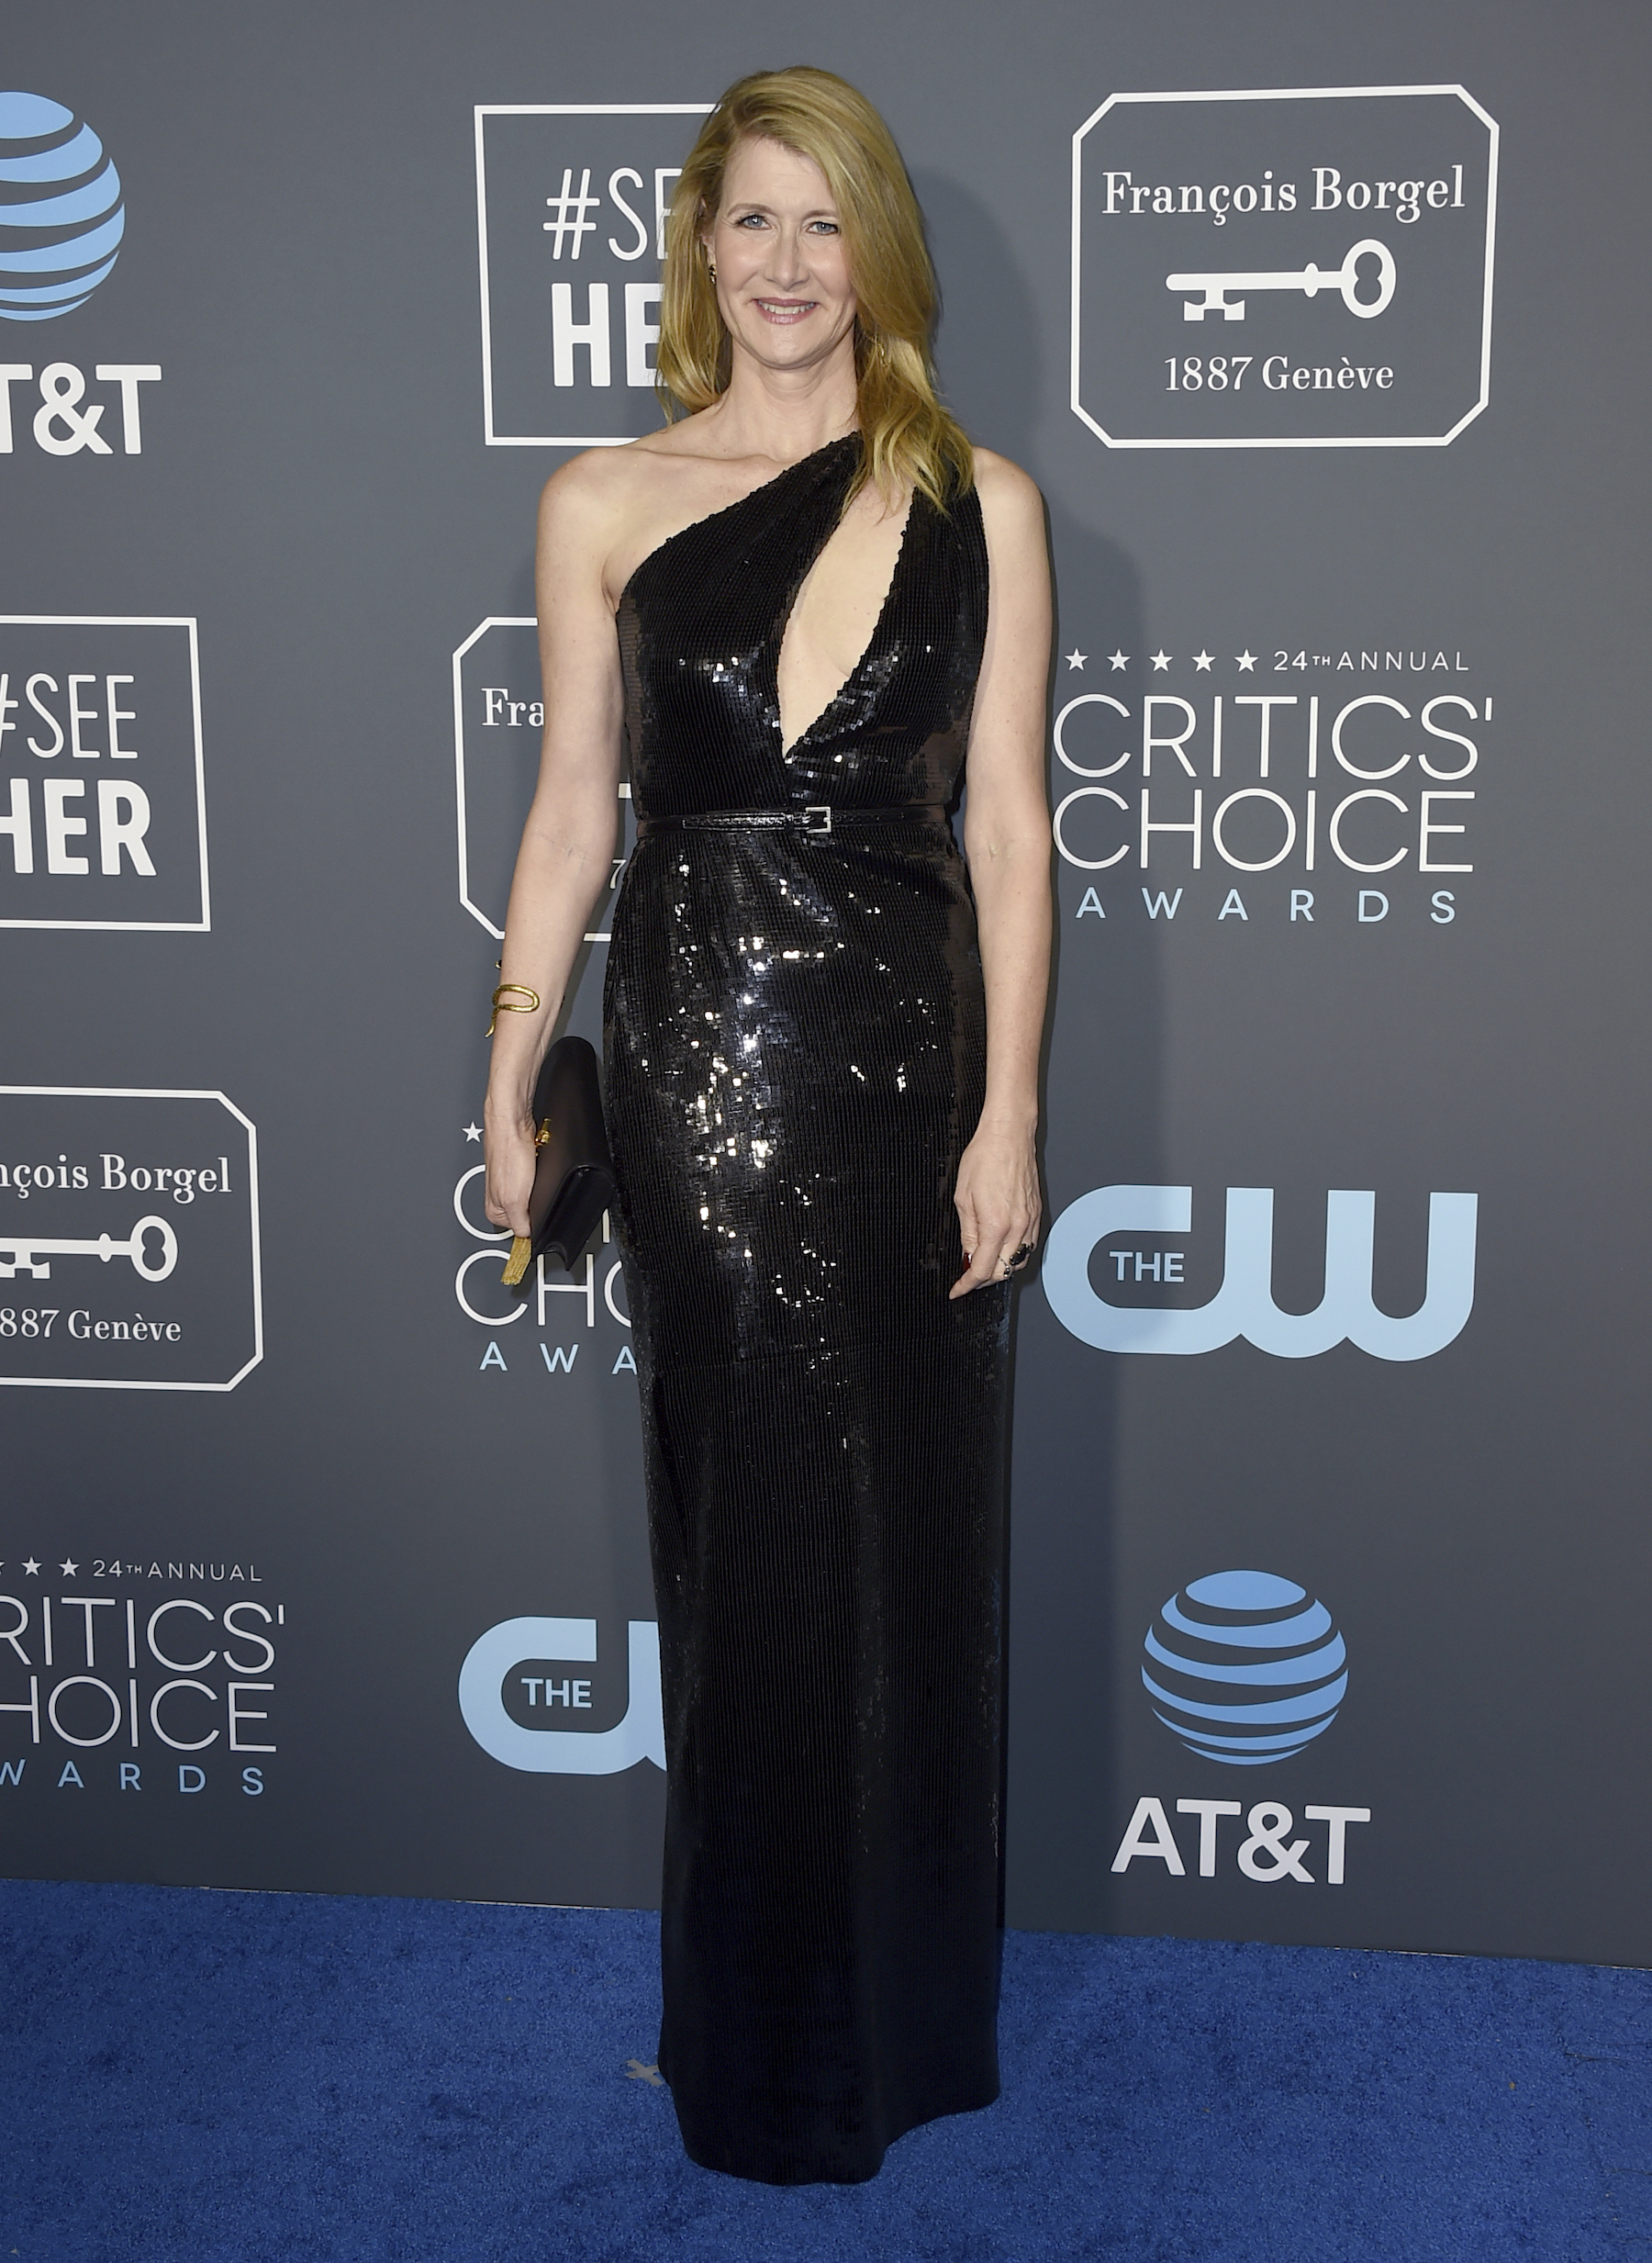 "<div class=""meta image-caption""><div class=""origin-logo origin-image ap""><span>AP</span></div><span class=""caption-text"">Laura Dern arrives at the 24th annual Critics' Choice Awards on Sunday, Jan. 13, 2019, at the Barker Hangar in Santa Monica, Calif. (Jordan Strauss/Invision/AP)</span></div>"